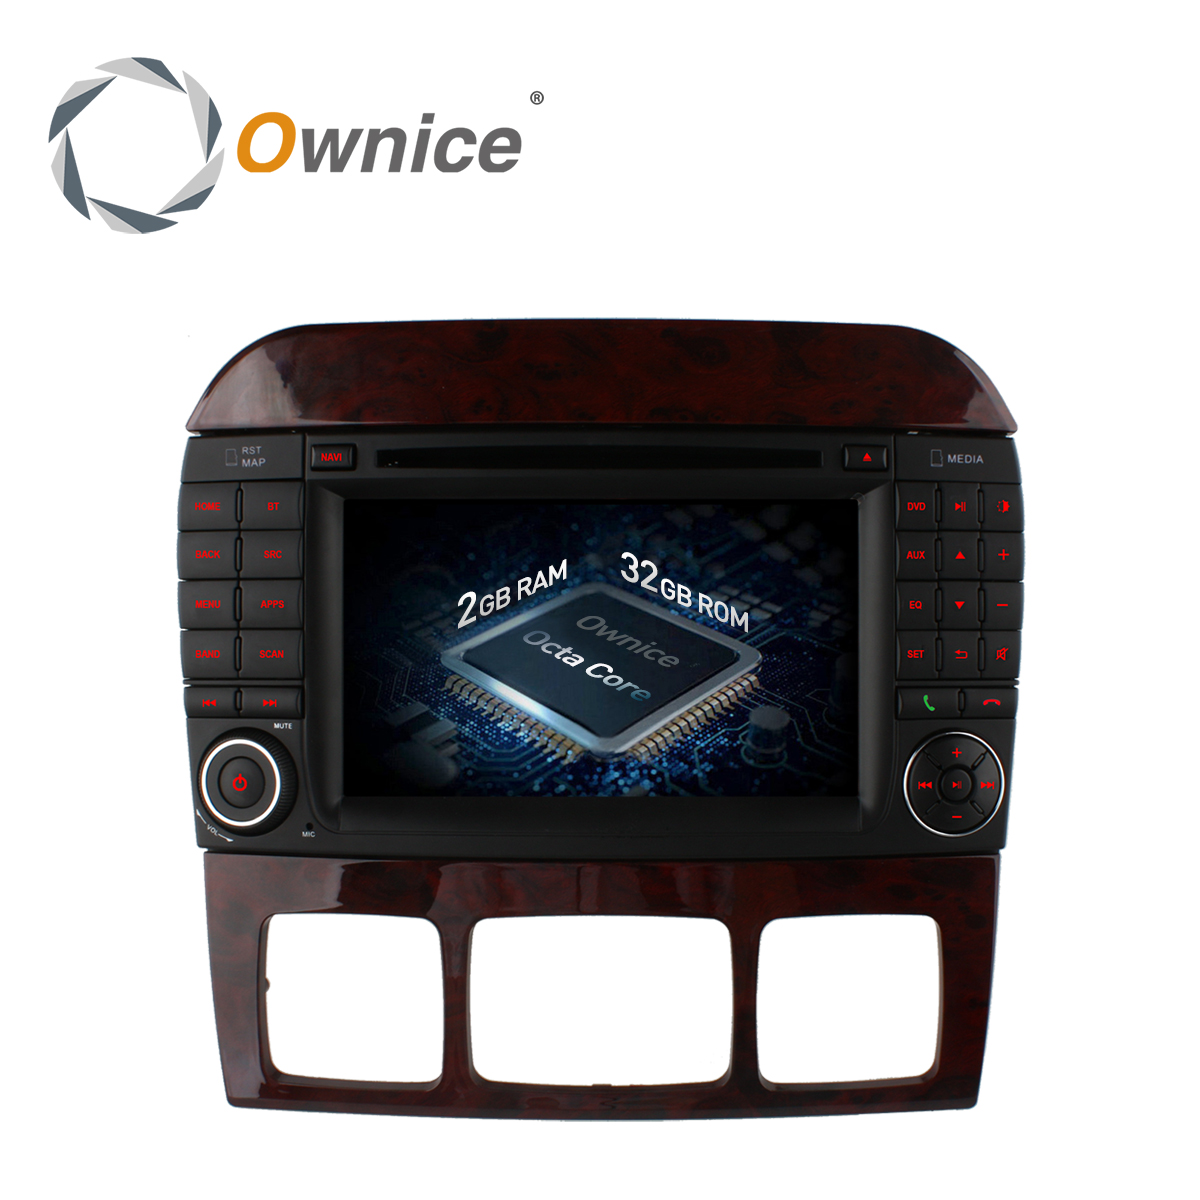 Ownice C500 Android 6.0 Octa Core Car DVD Player for Mercedes S Class W220 S280 S320 S350 S400 S420 S430 GPS Navi Radio wifi 4G